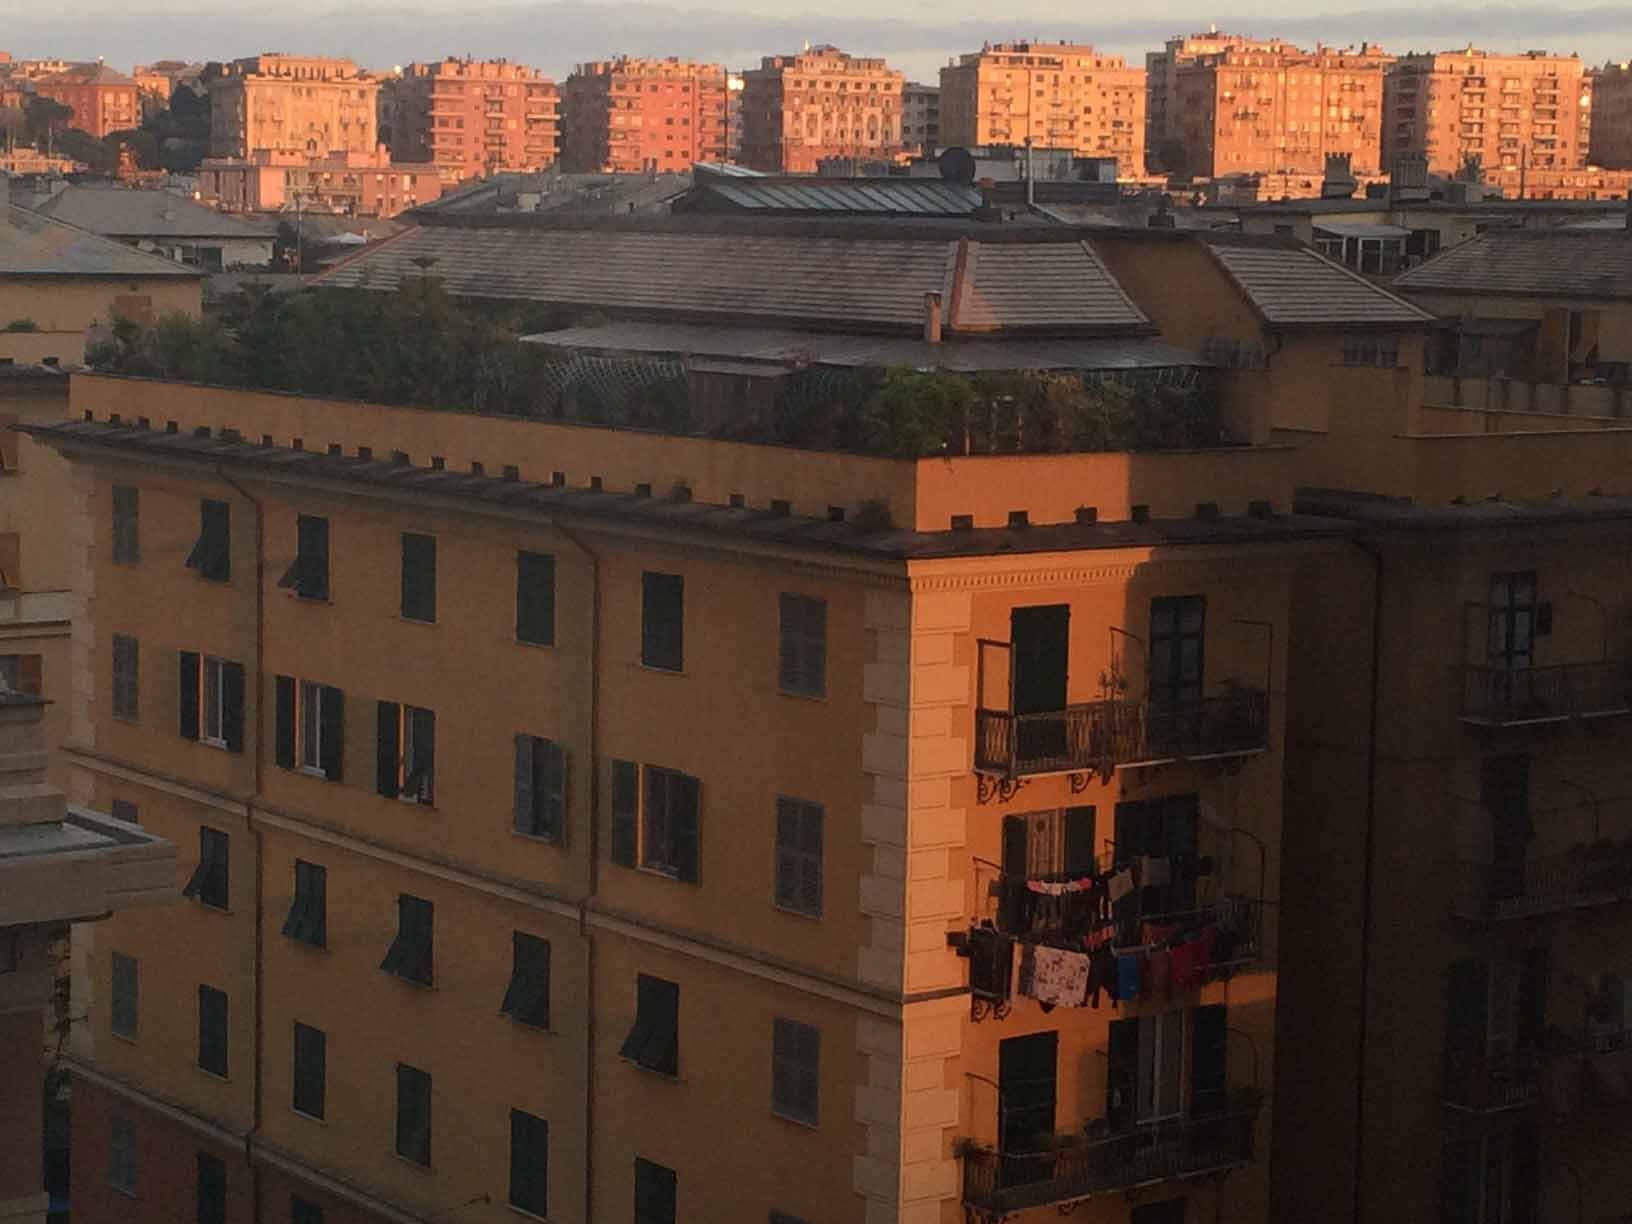 Lost in Genoa, we wondered past cheerless buildings. Don't trust your GPS.